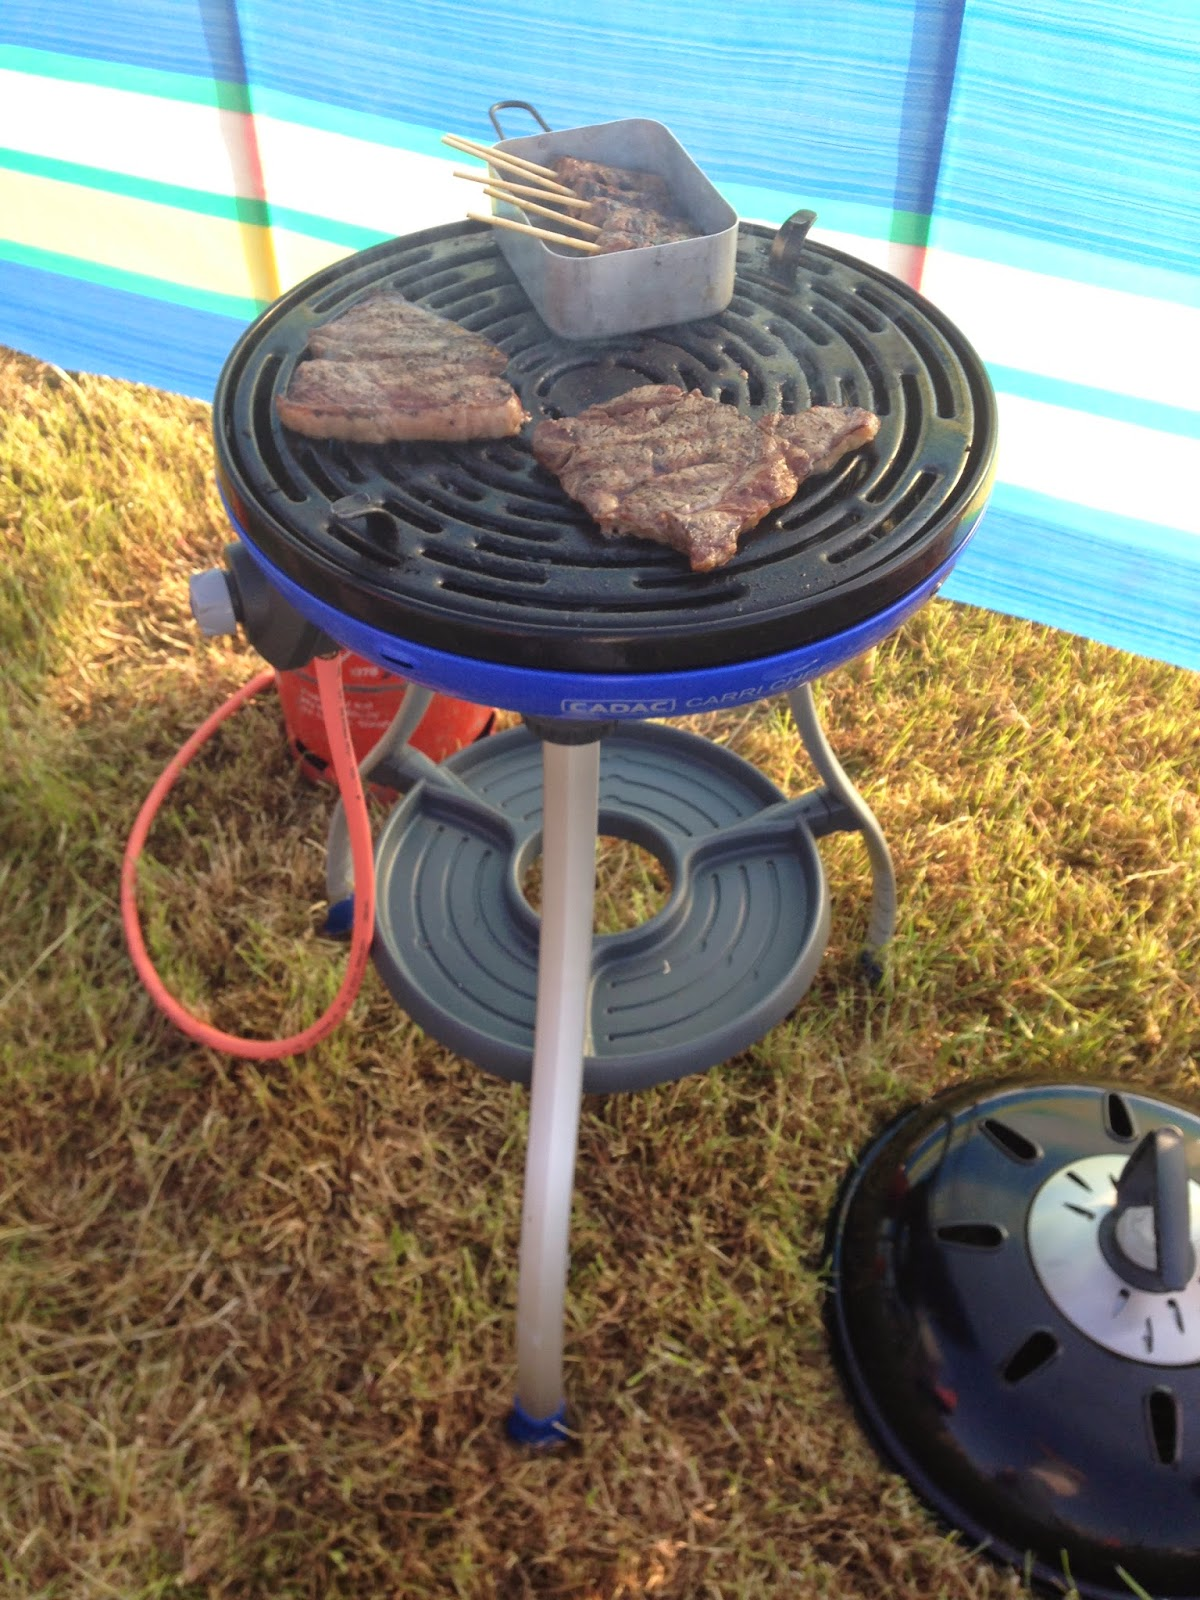 Steaks and kebabs cook on a barbecue